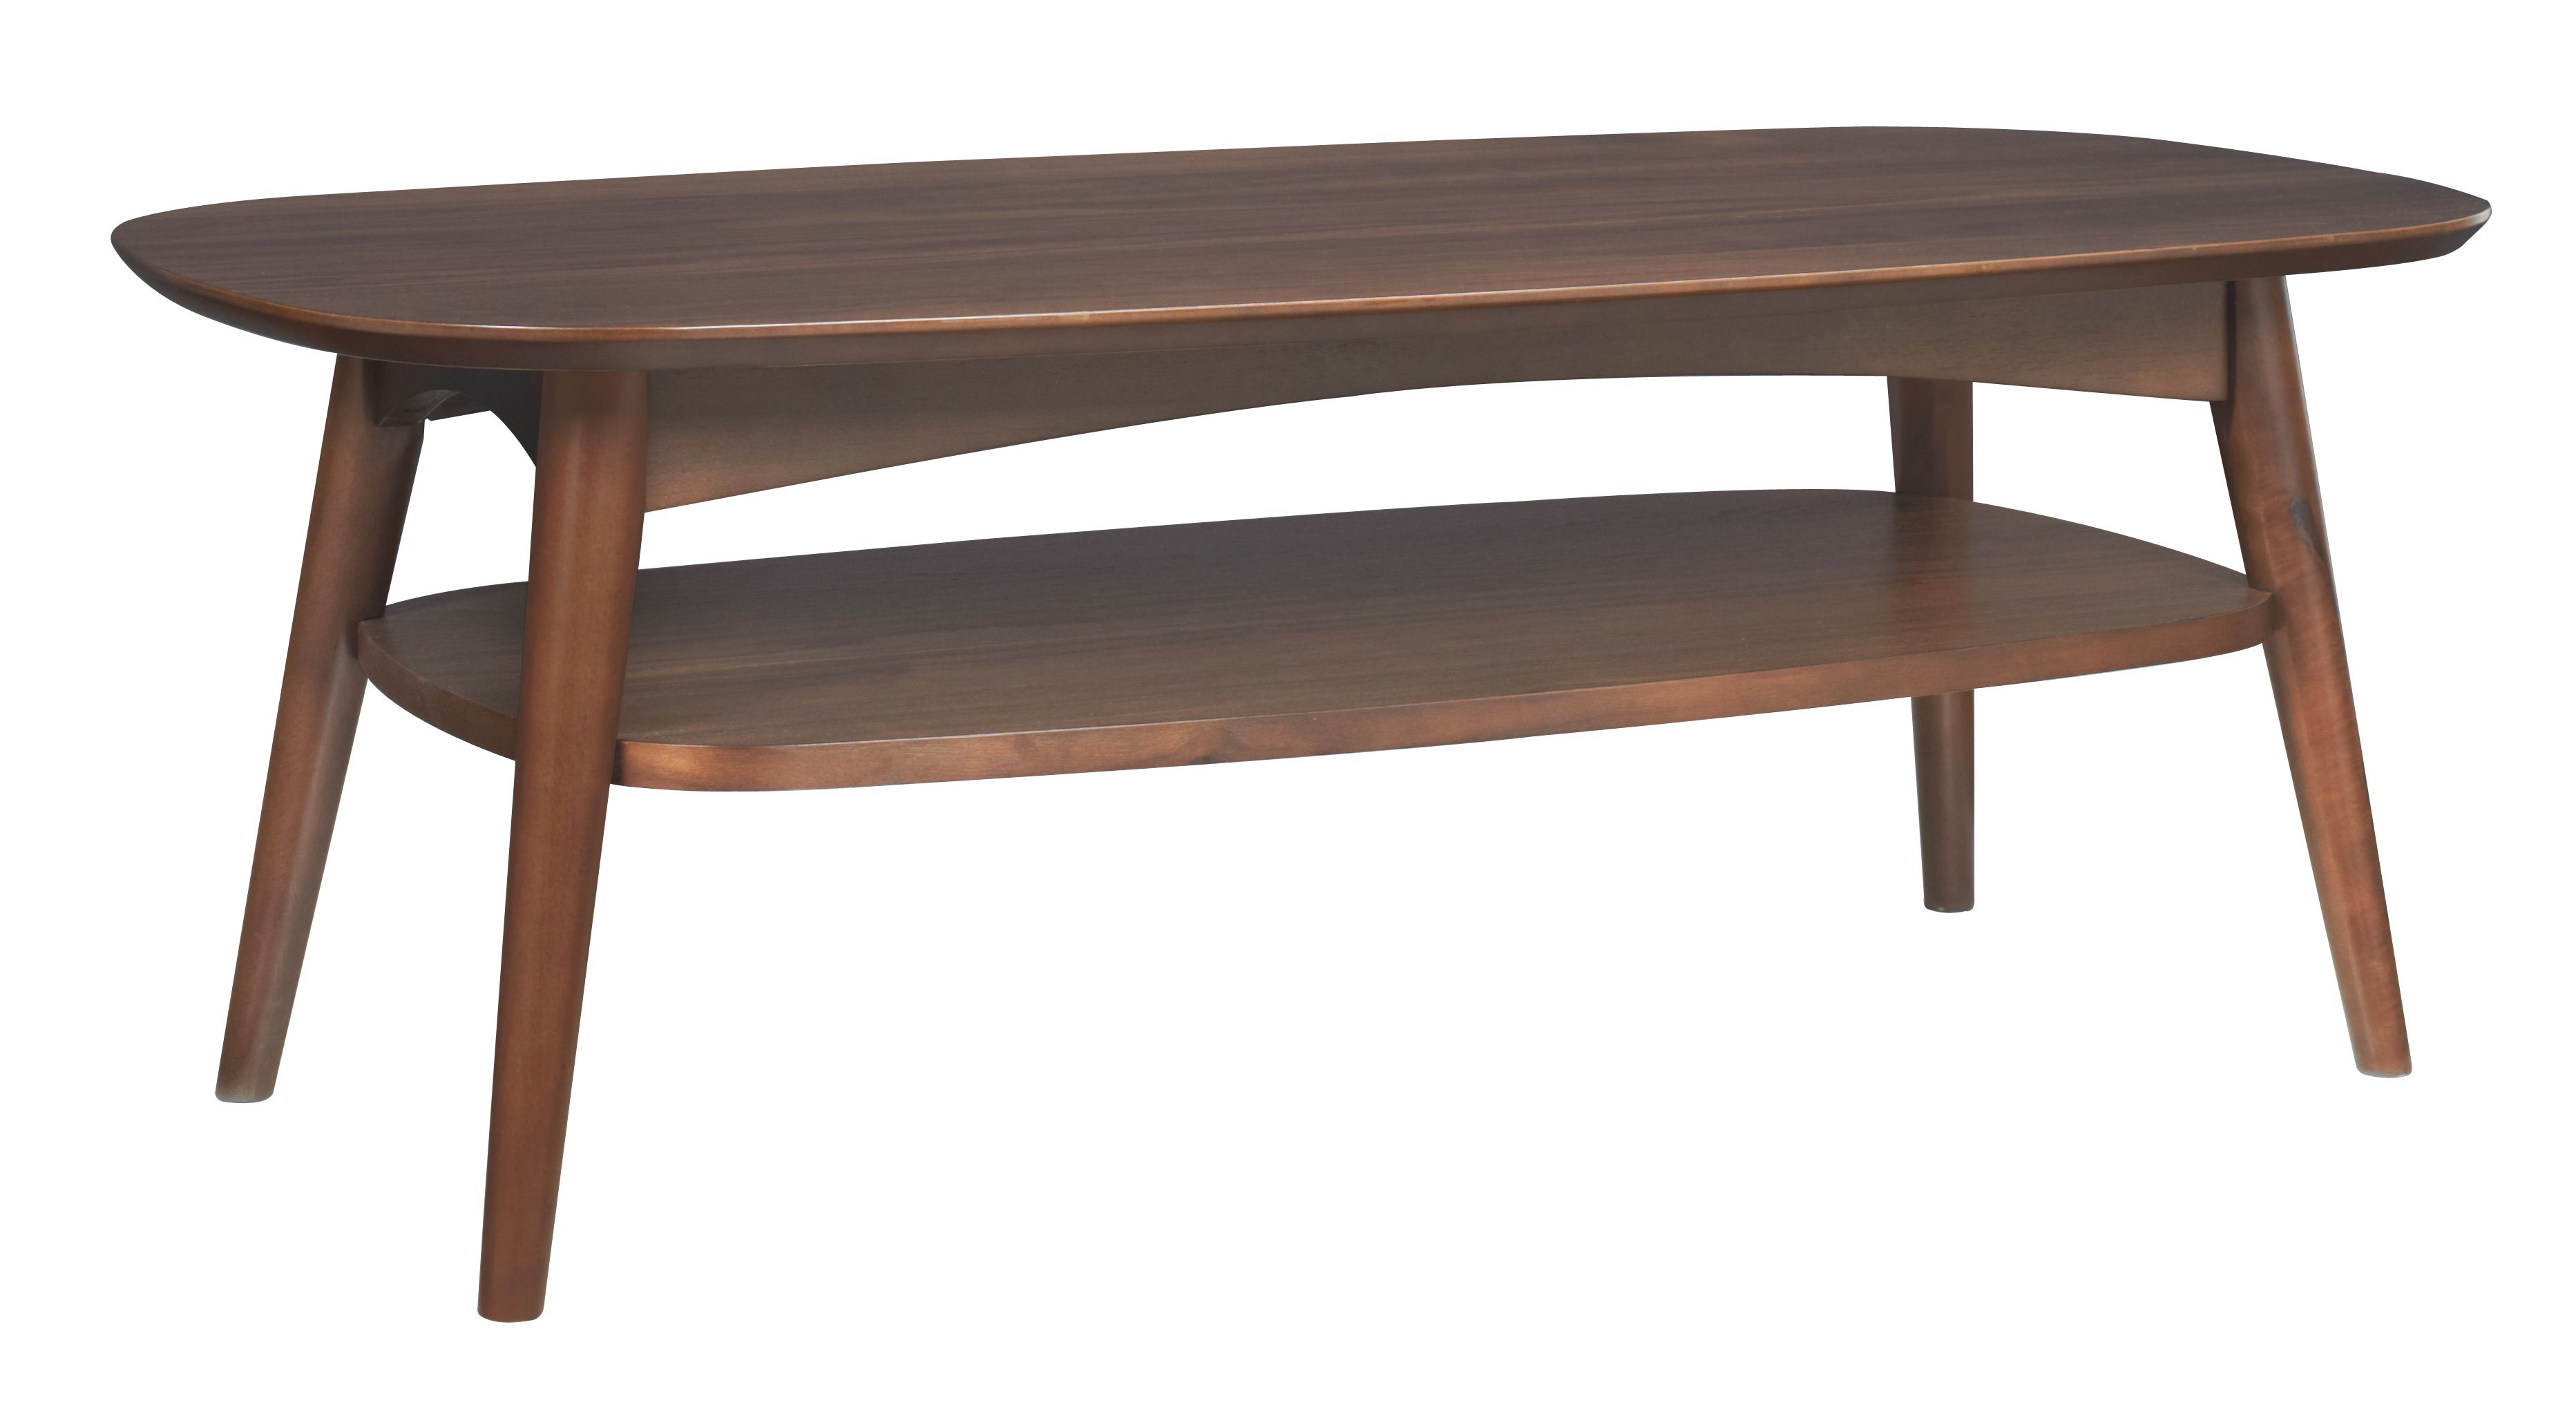 Dean coffee table with shelf